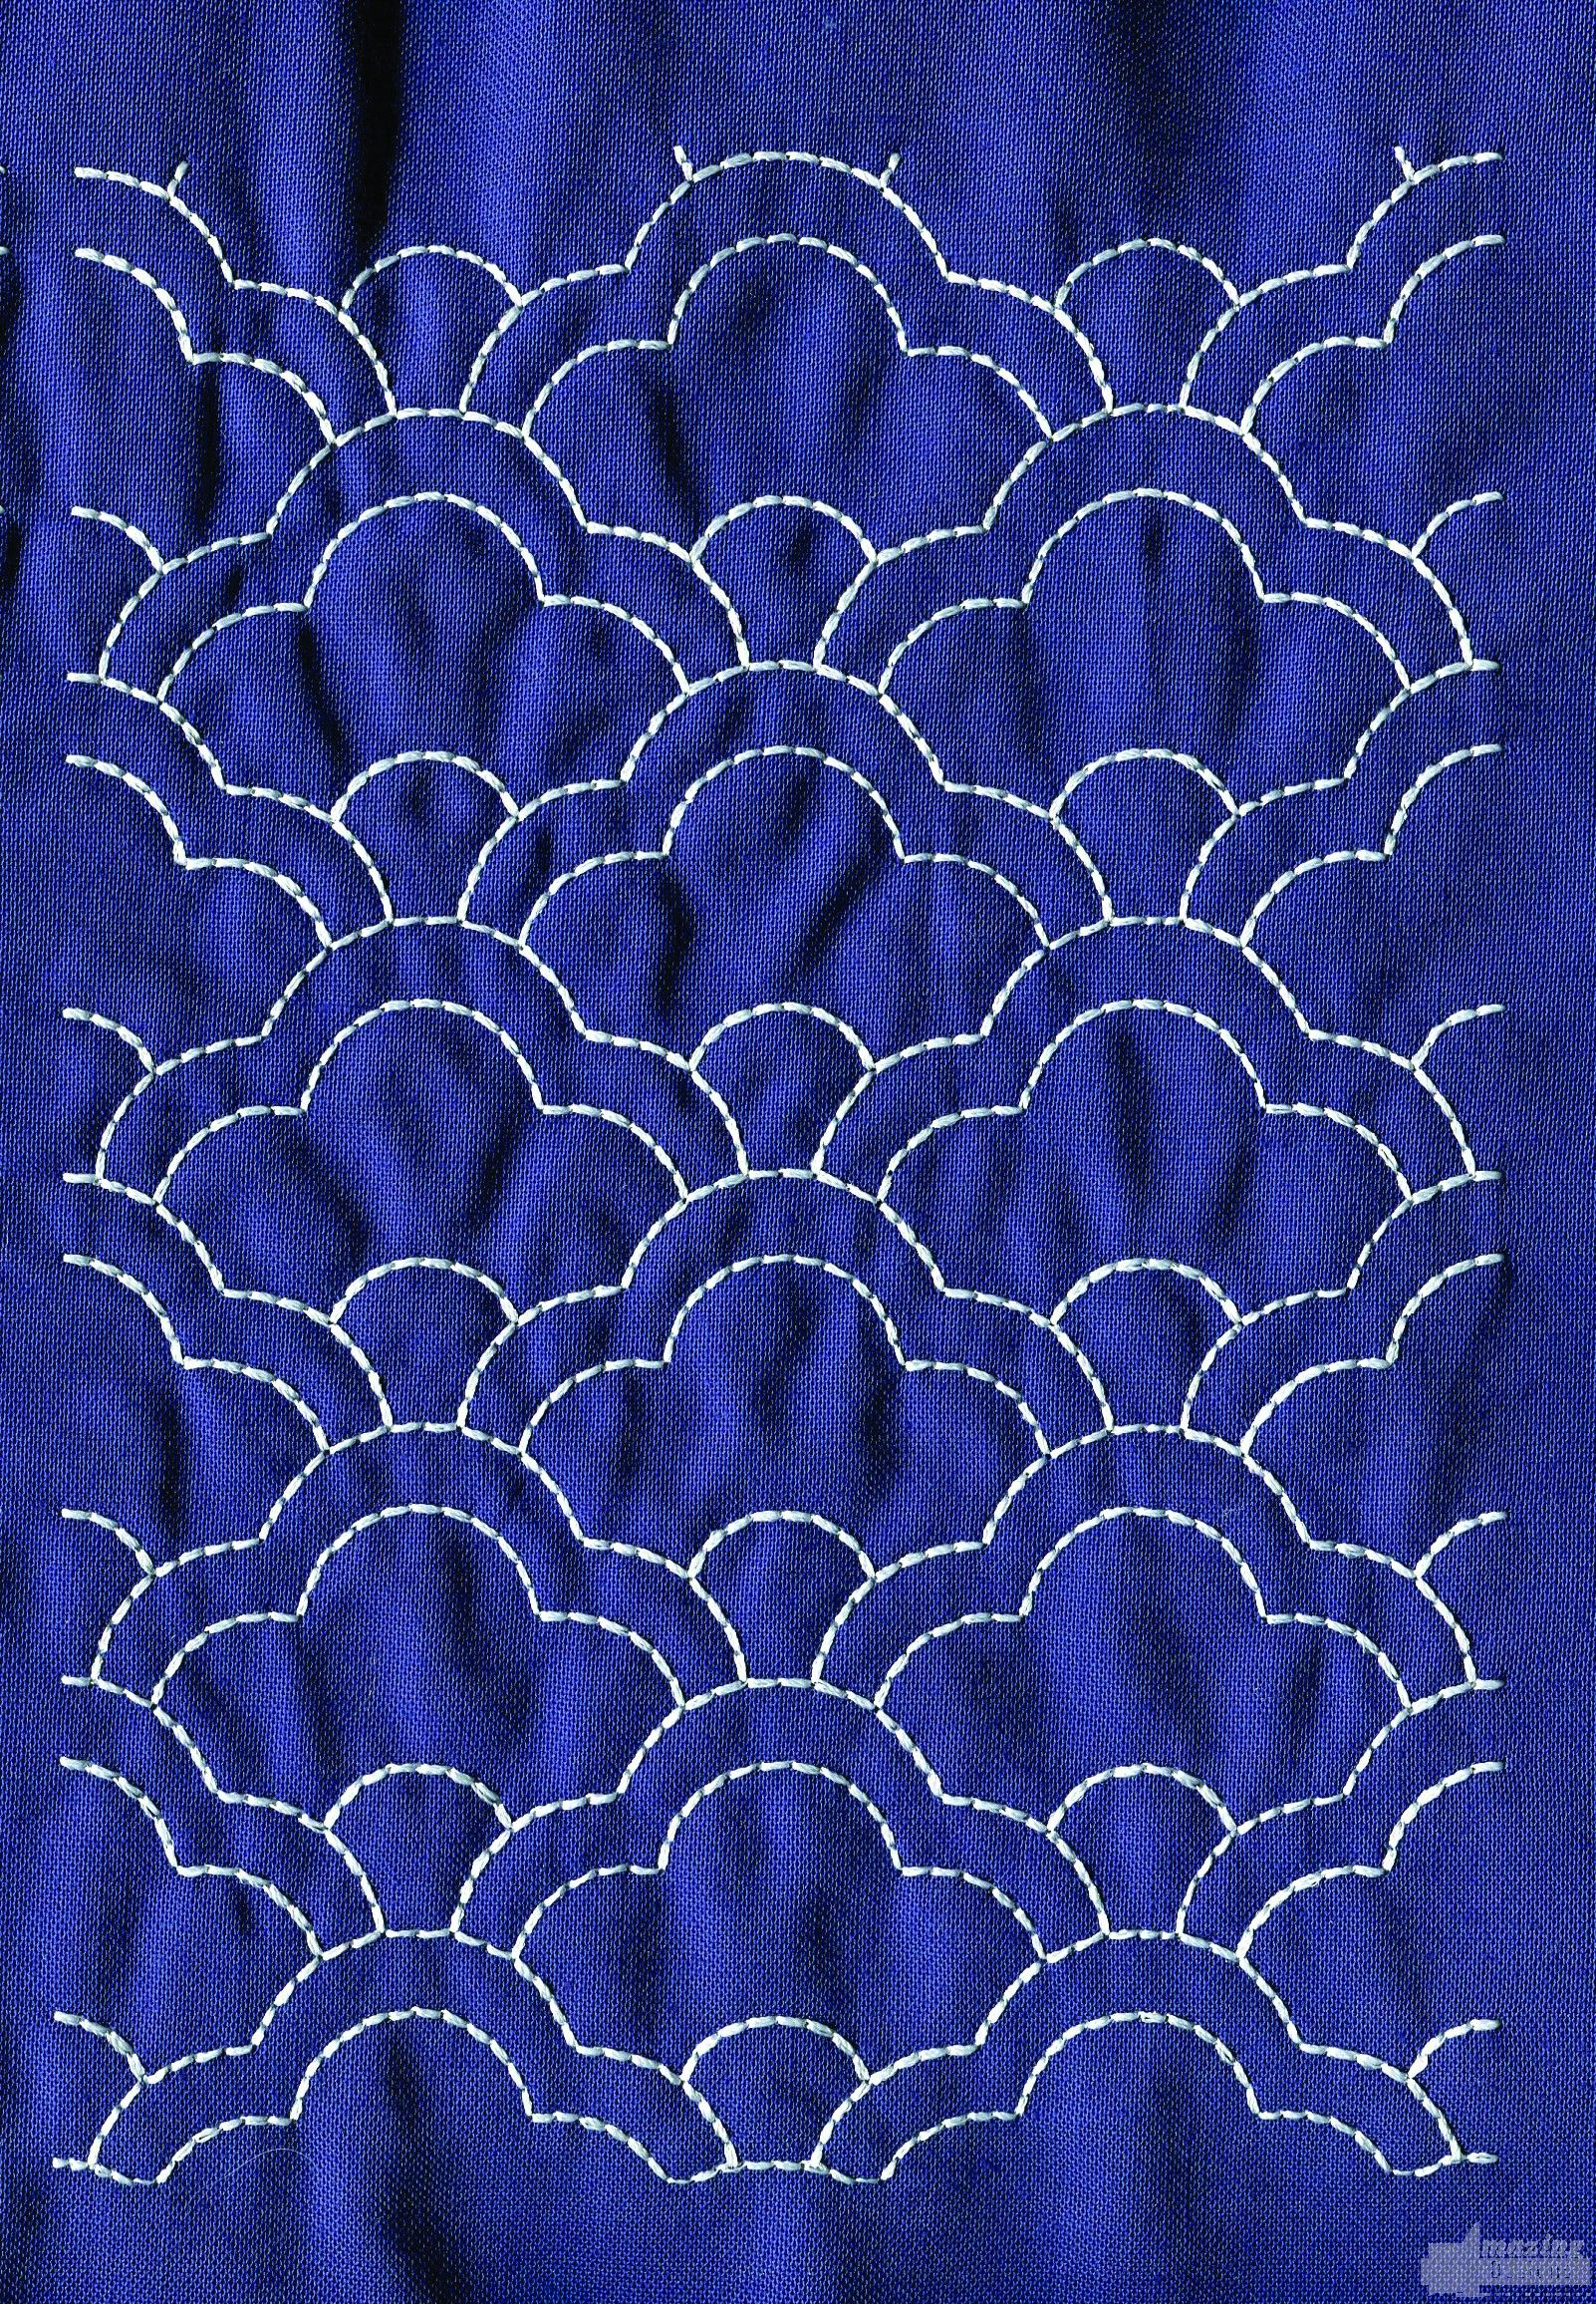 Sashiko patterns free download quilt embroidery